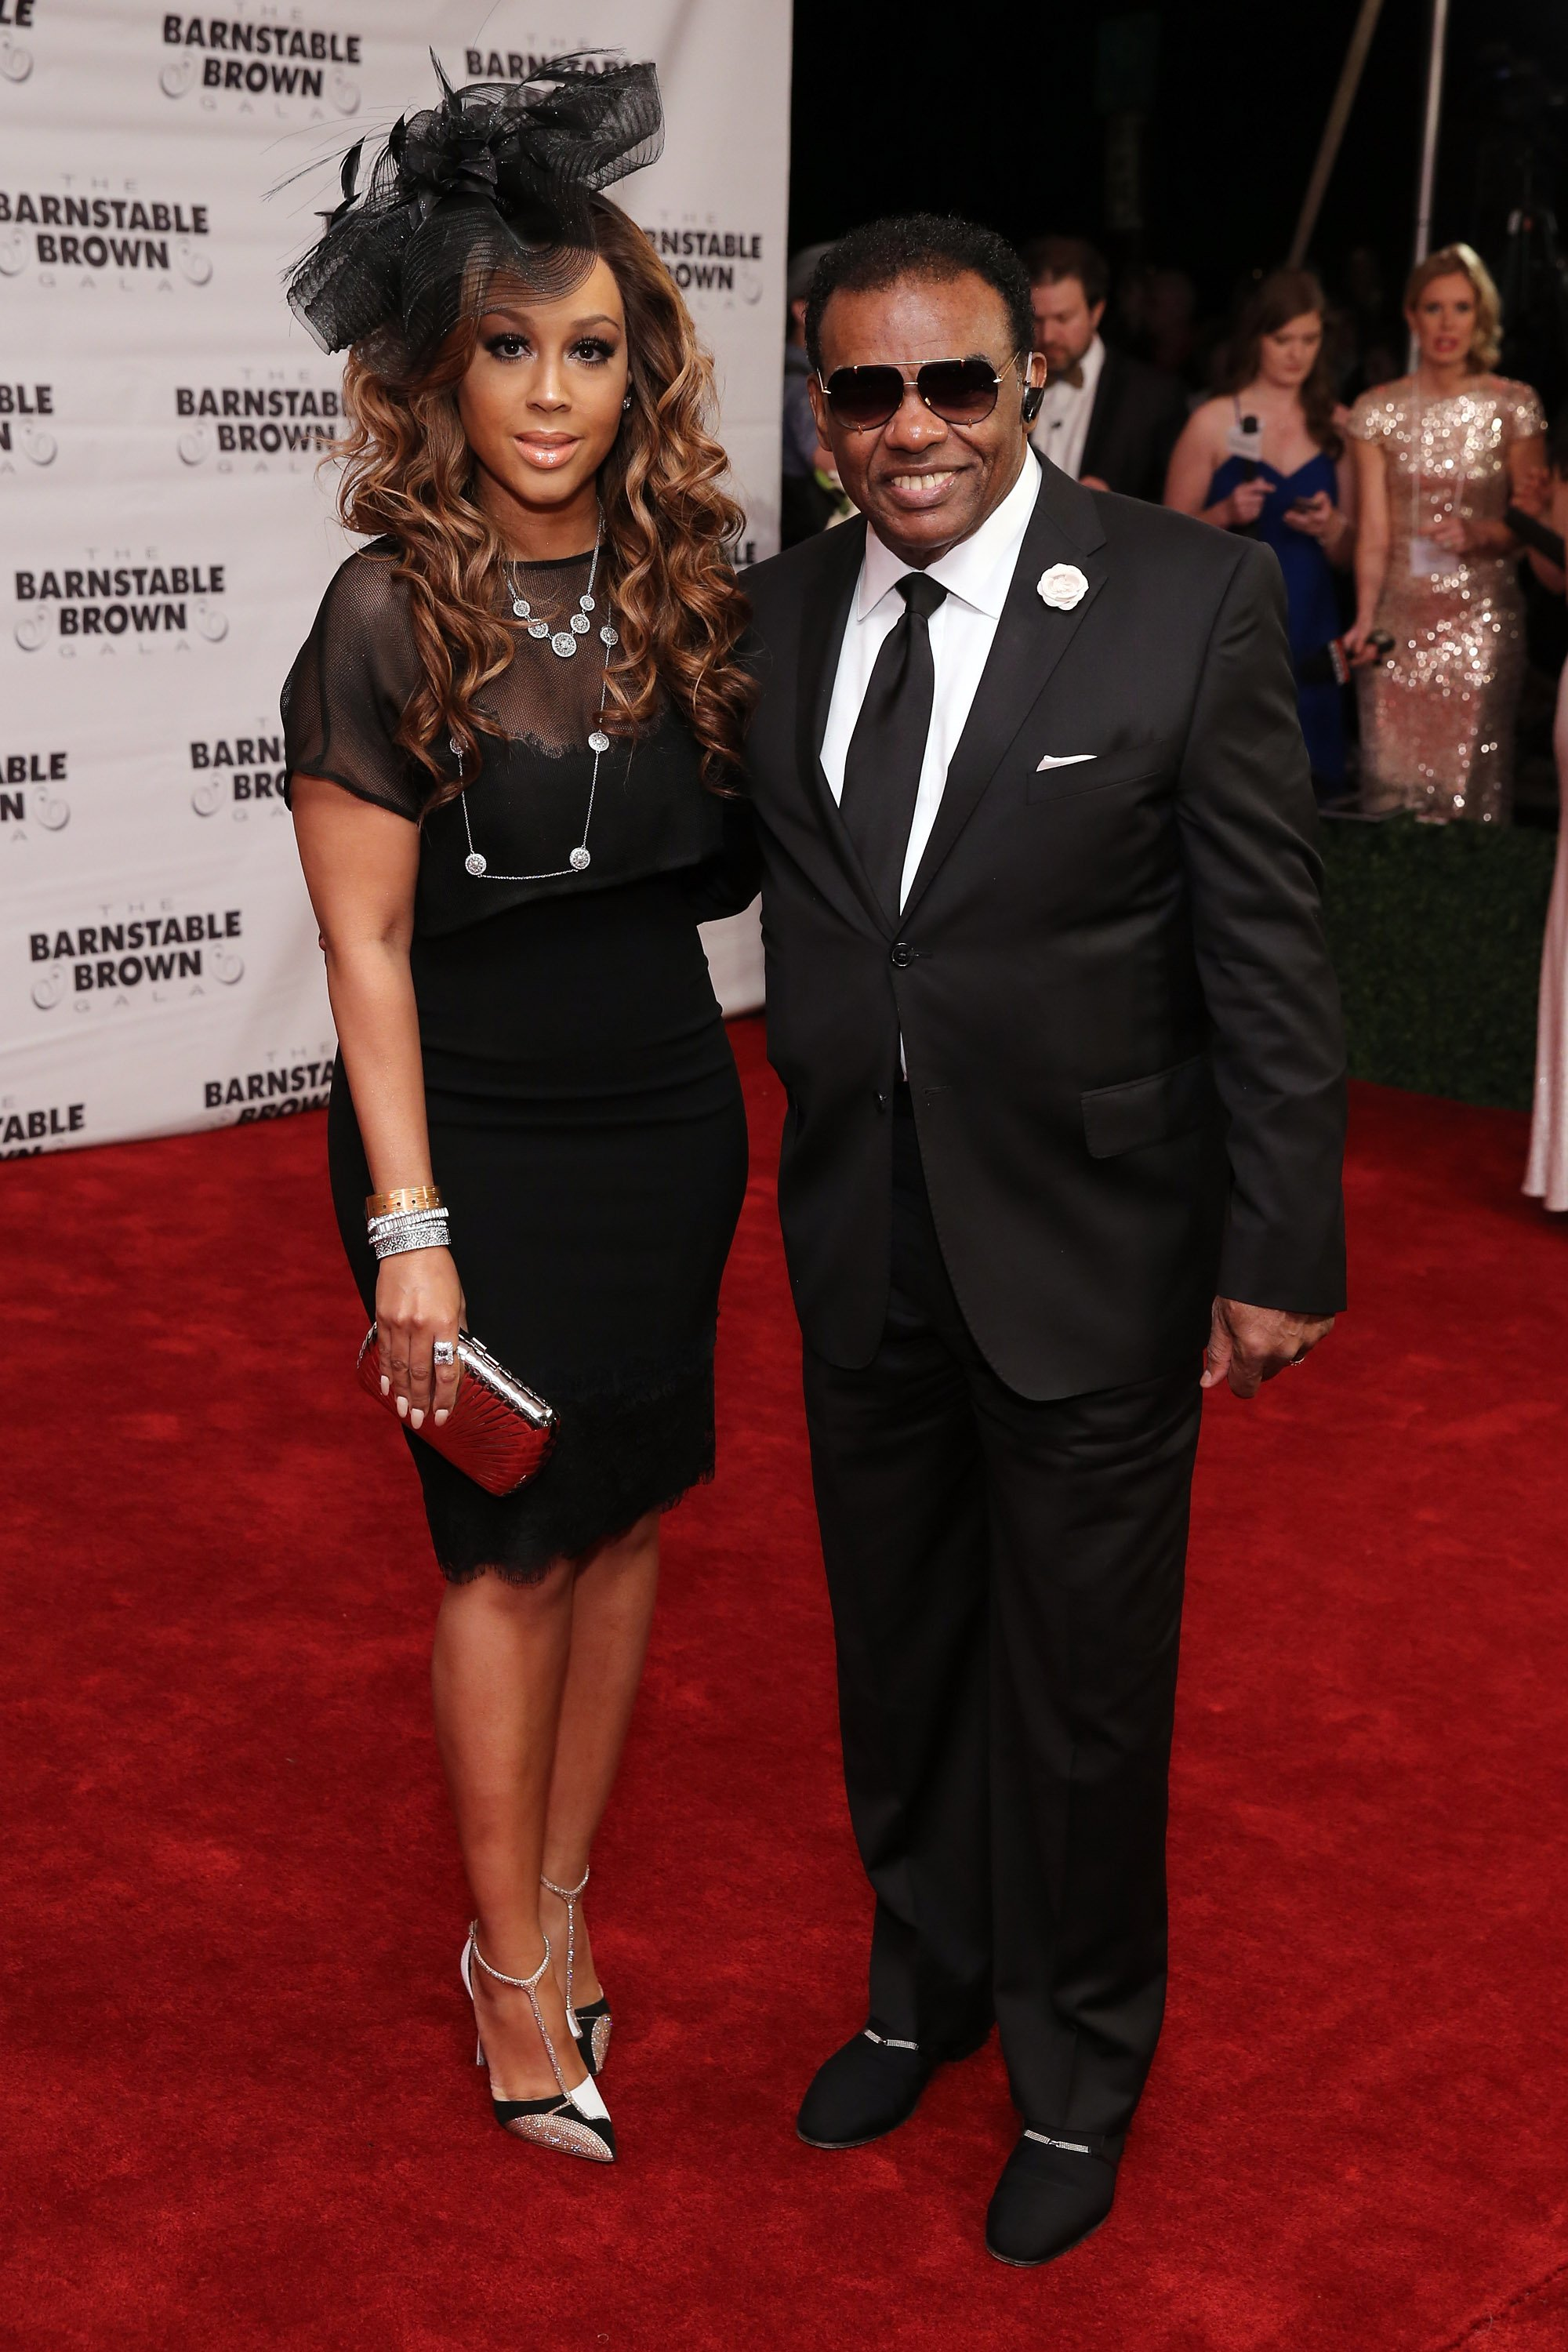 Ron Isley & Kandy Johnson Isley at the Barnstable Brown Kentucky Derby Eve Gala on May 1, 2015 in Louisville, Kentucky | Photo: Getty Images